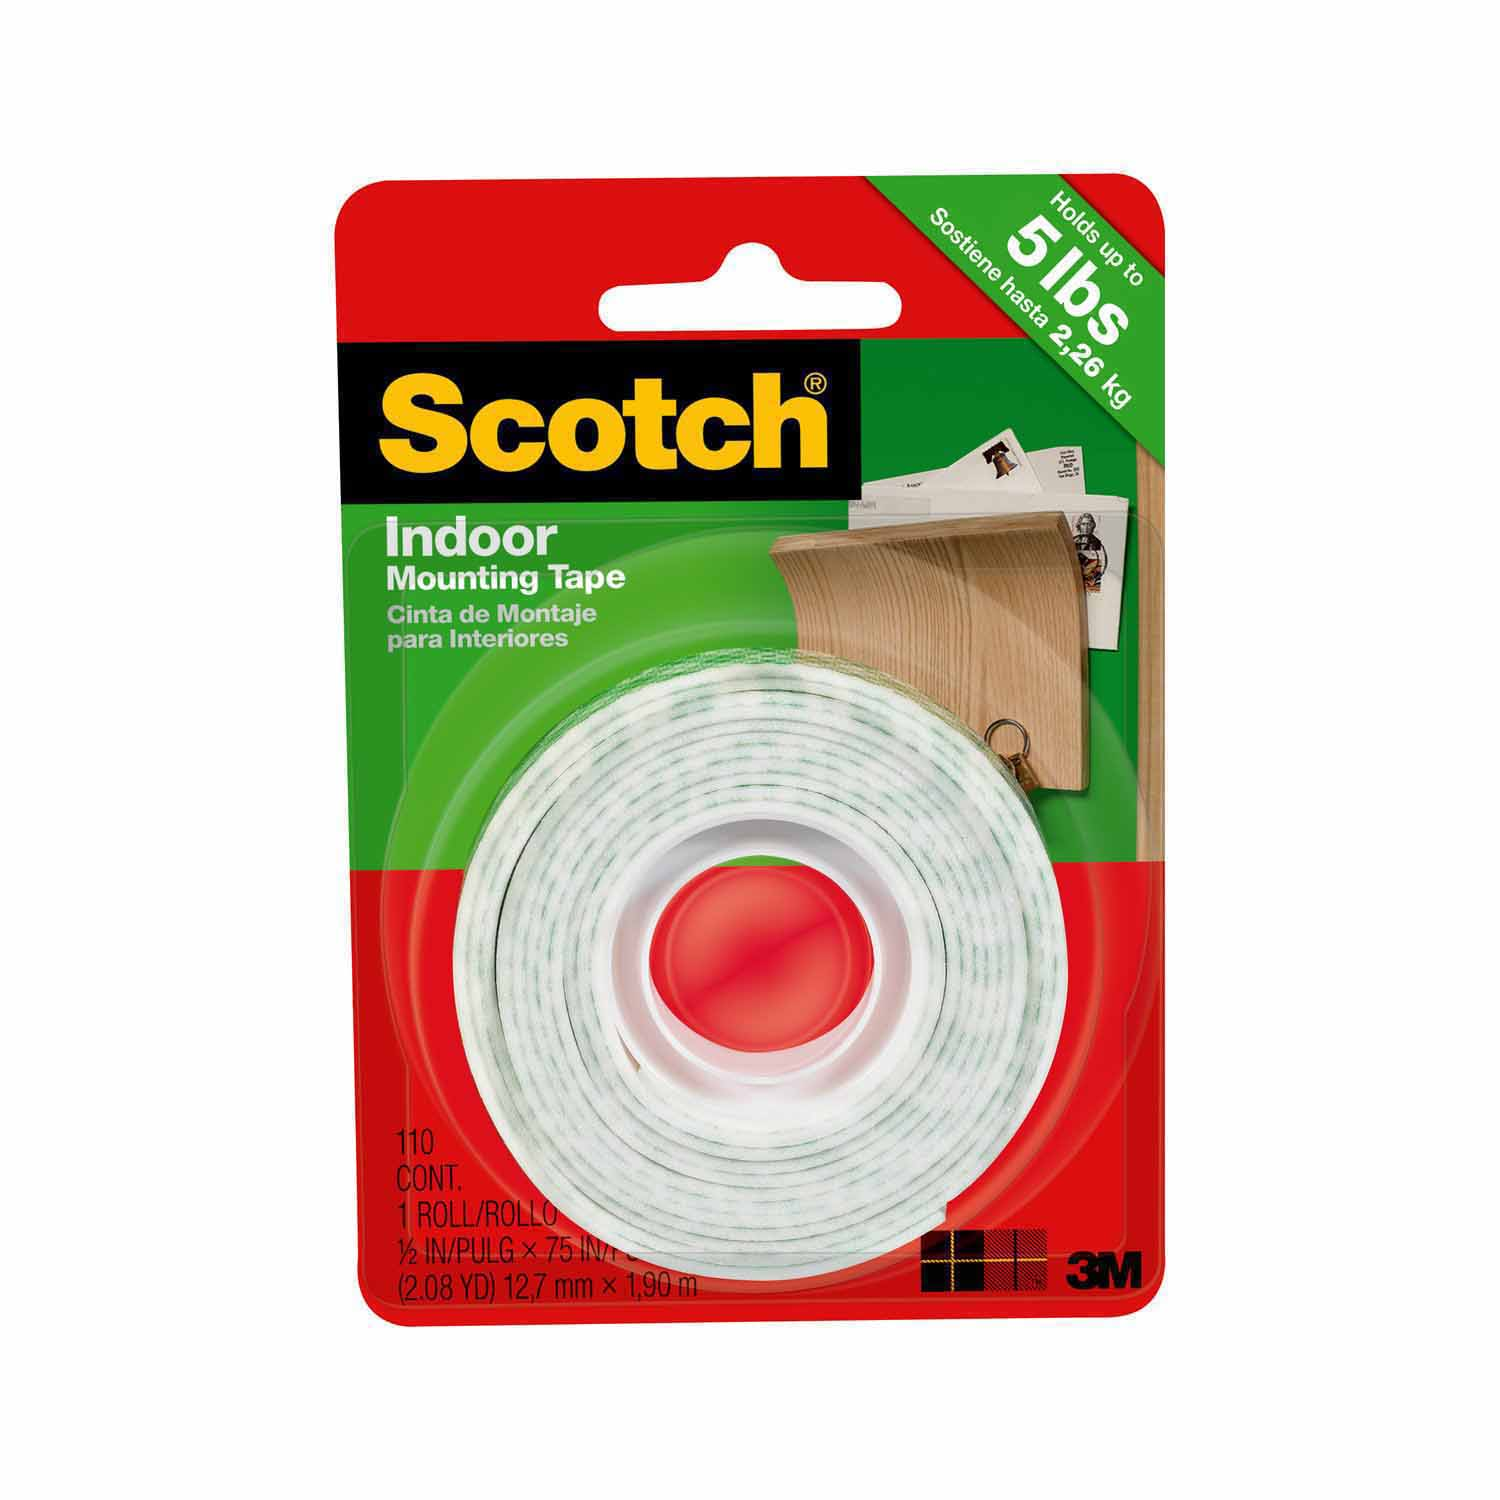 Scotch Indoor Mounting Tape, 0.5 in. x 75 in., White, 1 Roll/Pack